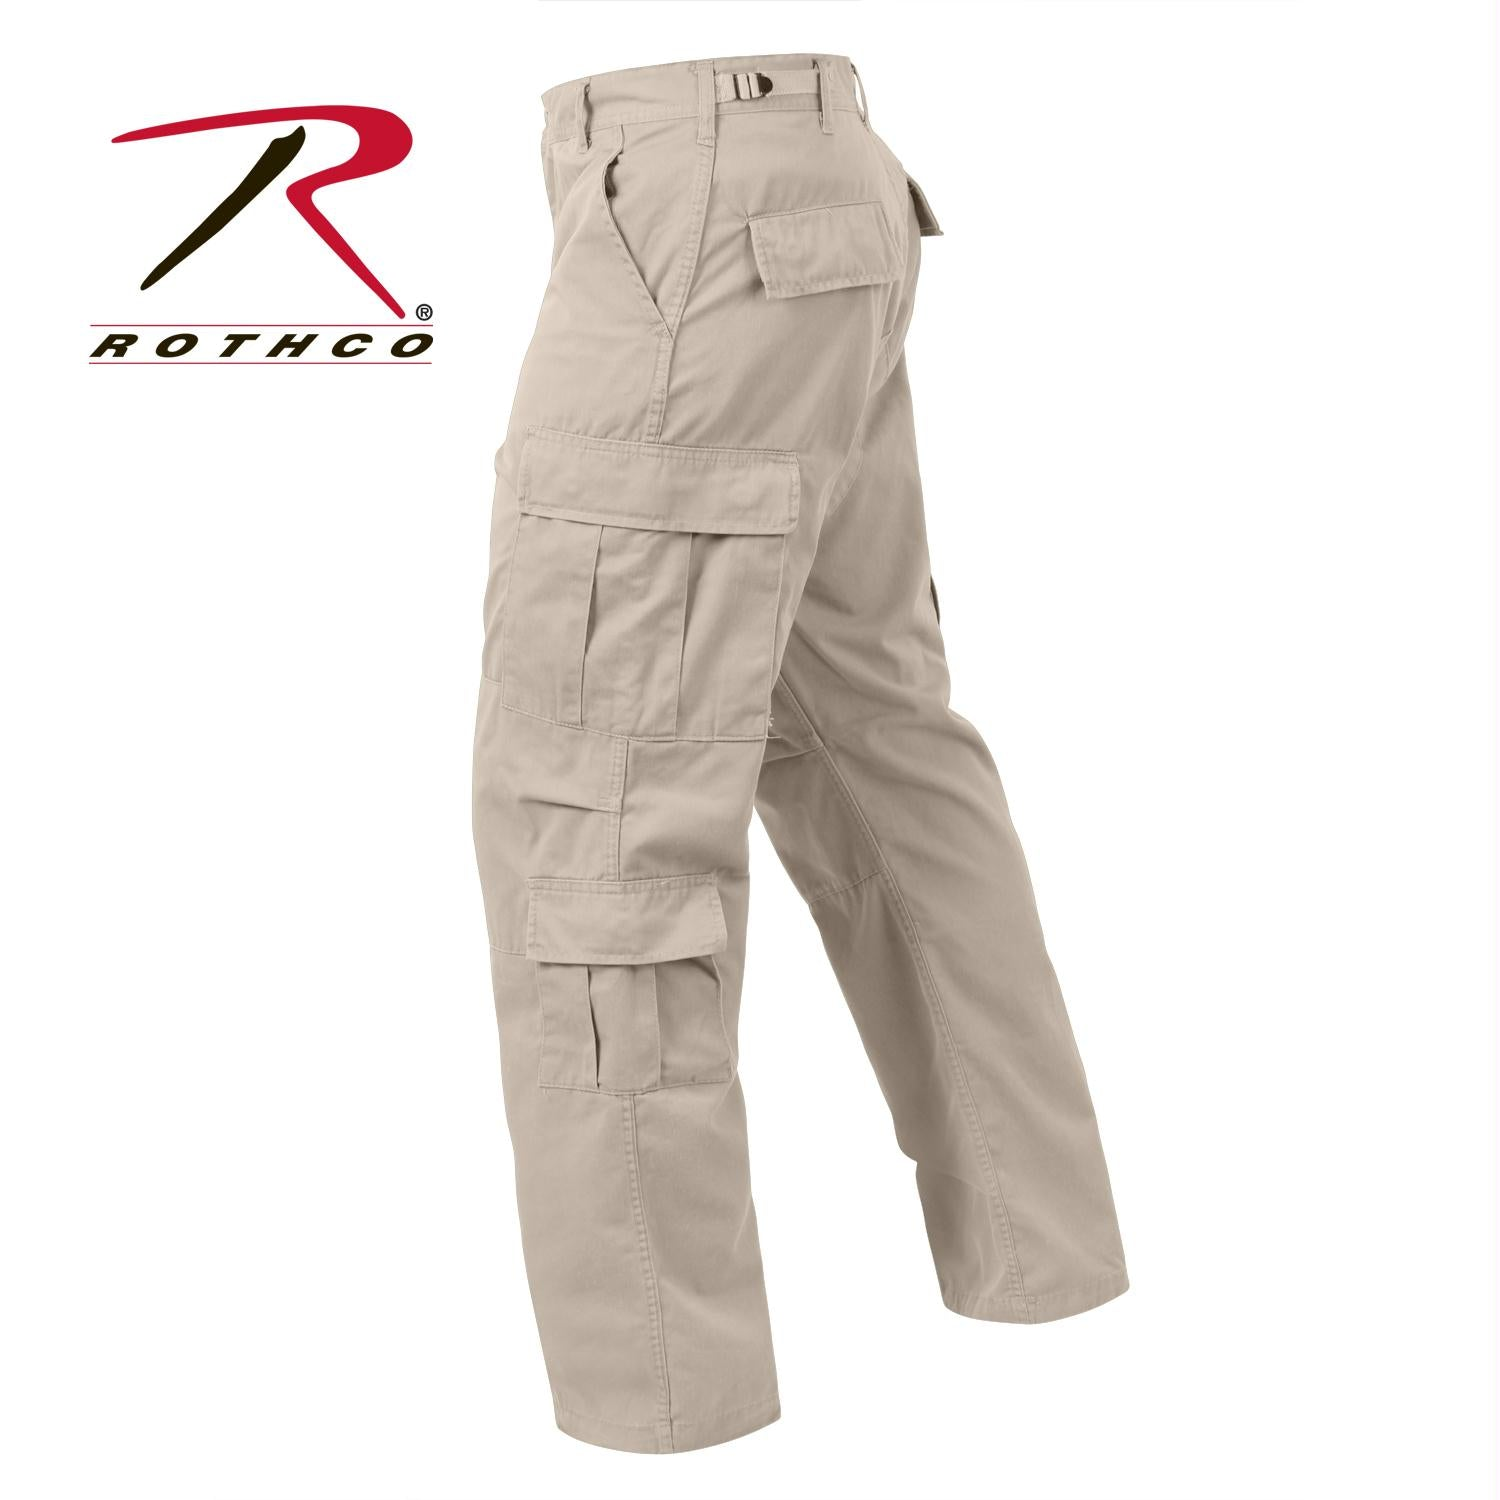 Rothco Vintage Paratrooper Fatigue Pants - Stone / 3XL